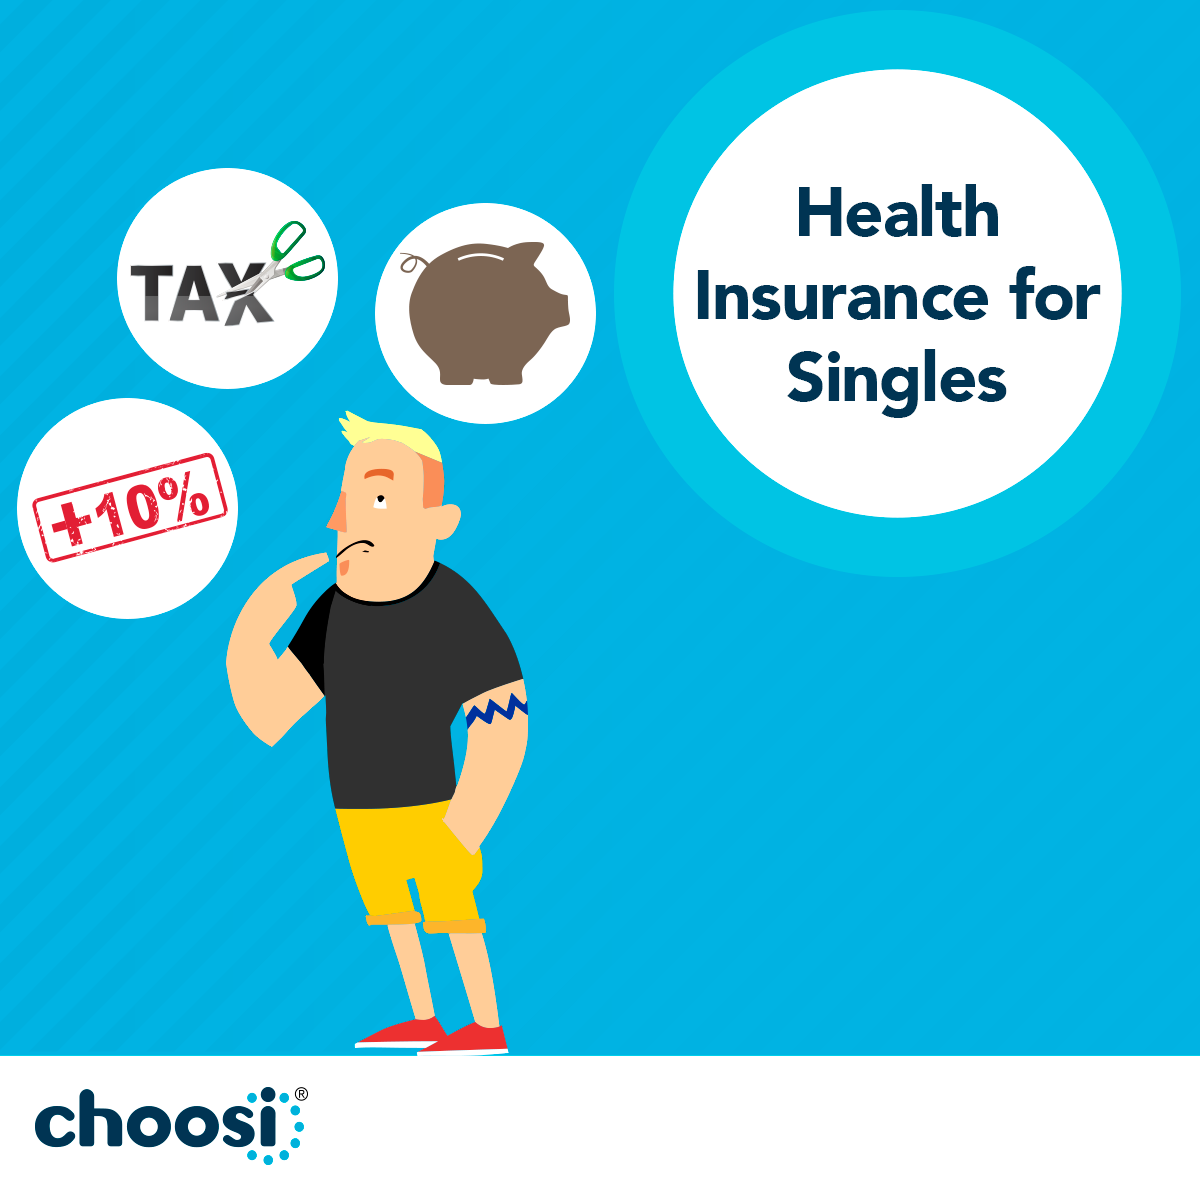 5 Tips for singles to consider before taking out health ...